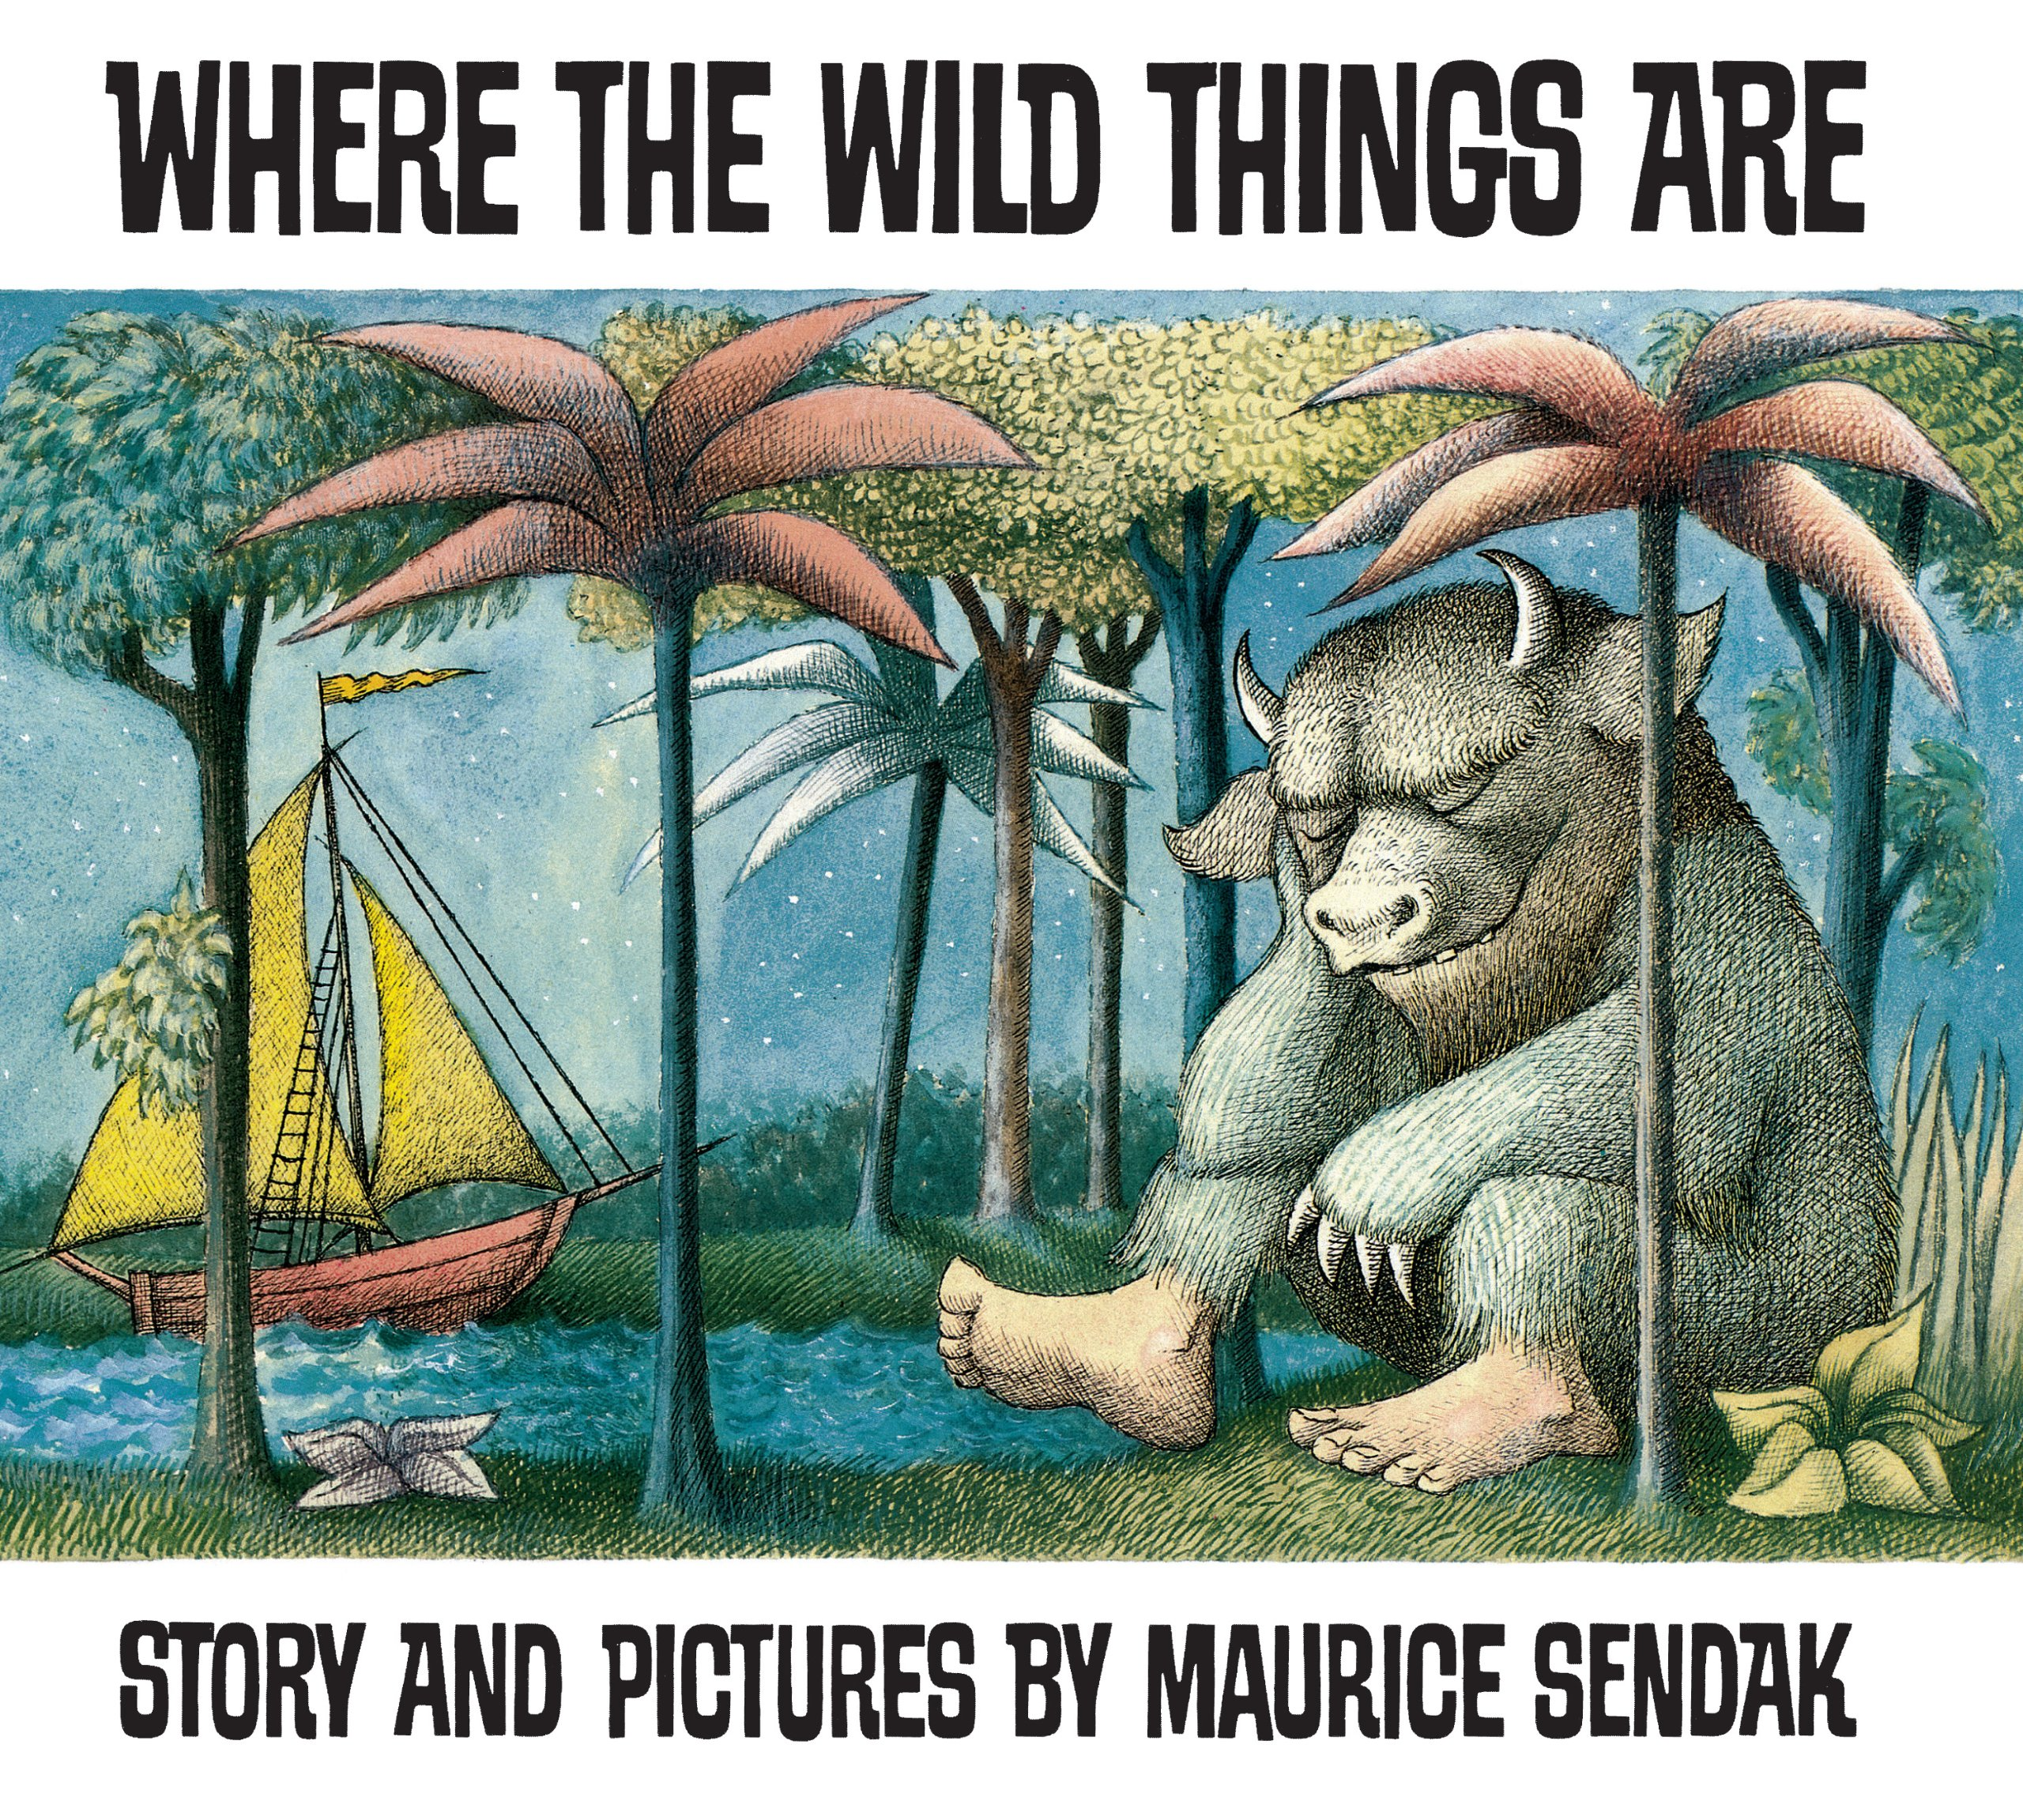 Where The Wild Things Are cover for post on lunar consciousness